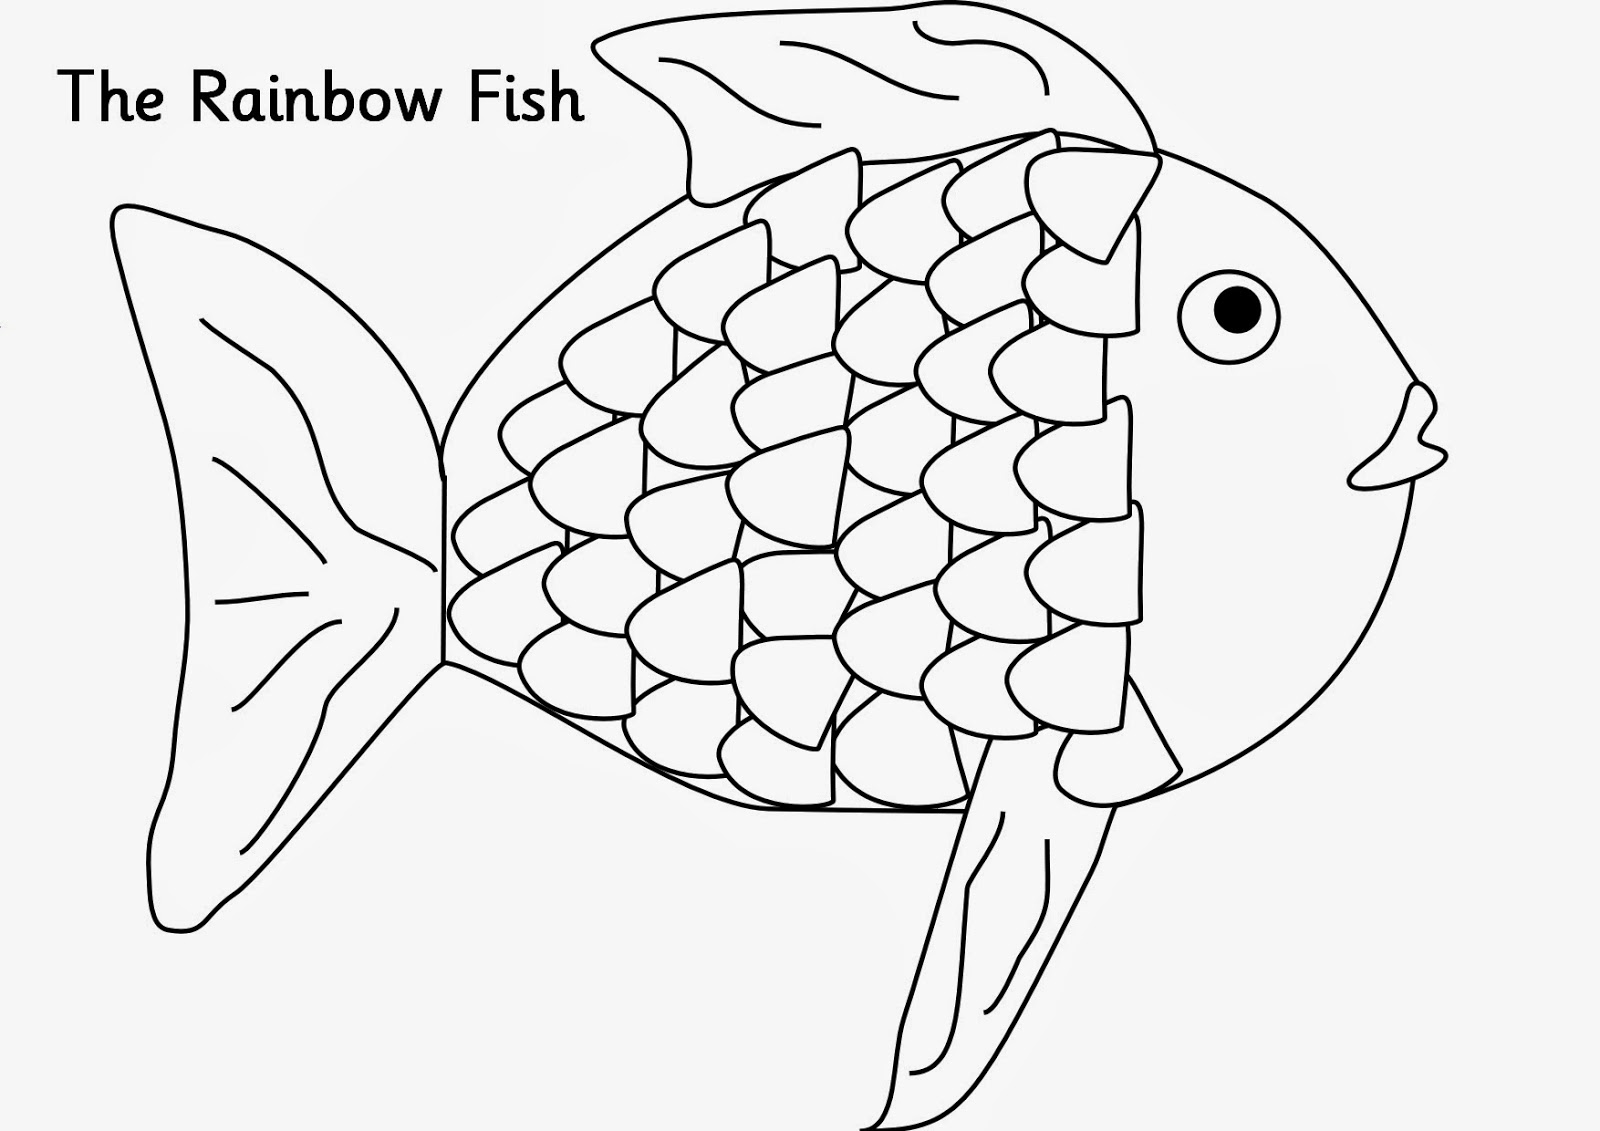 seo tags cute fish for kid coloring drawing wallpapers cute fish for